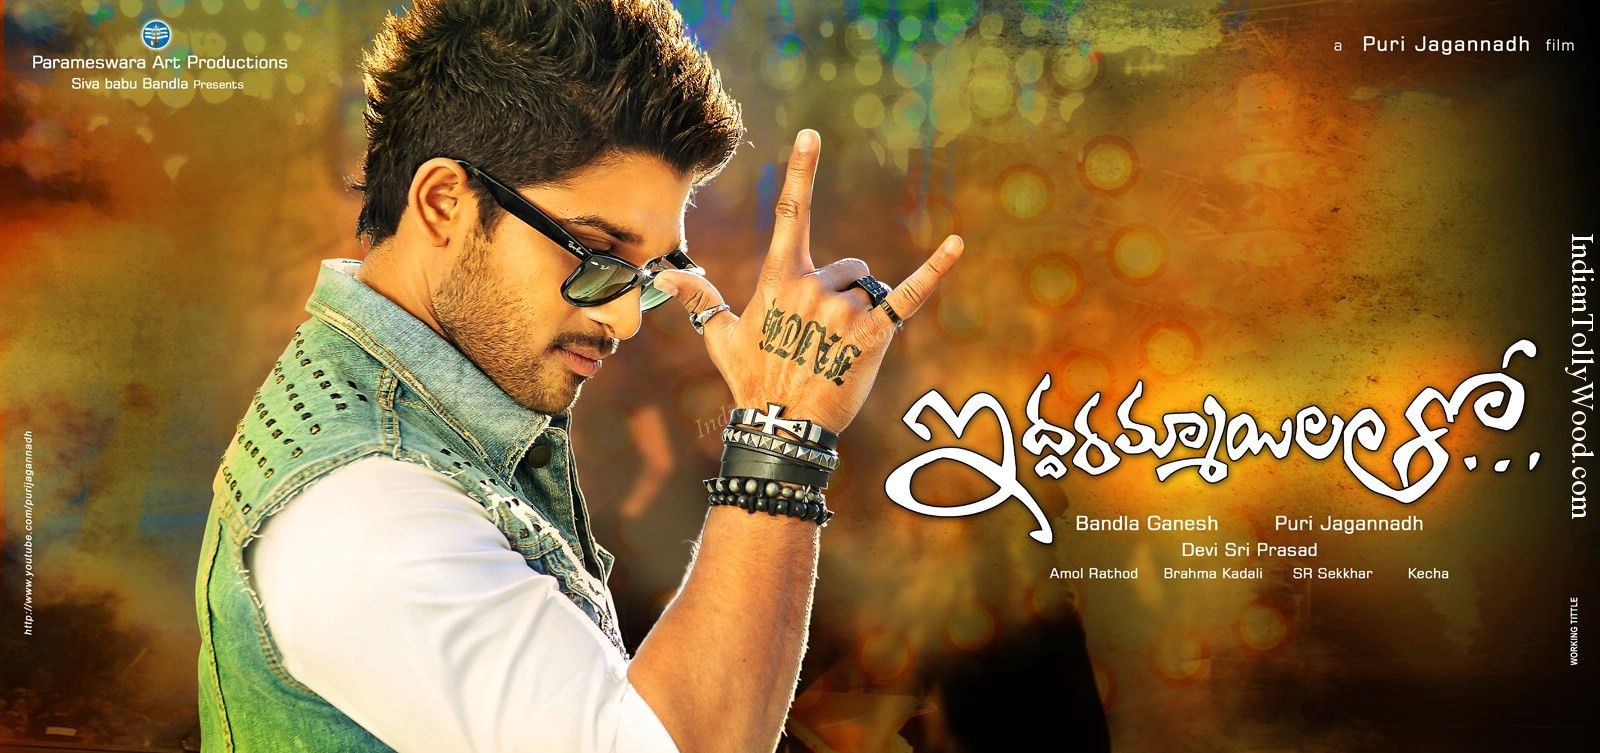 Iddarammayilatho latest wallpapers songs by lyrics for The latest wallpaper